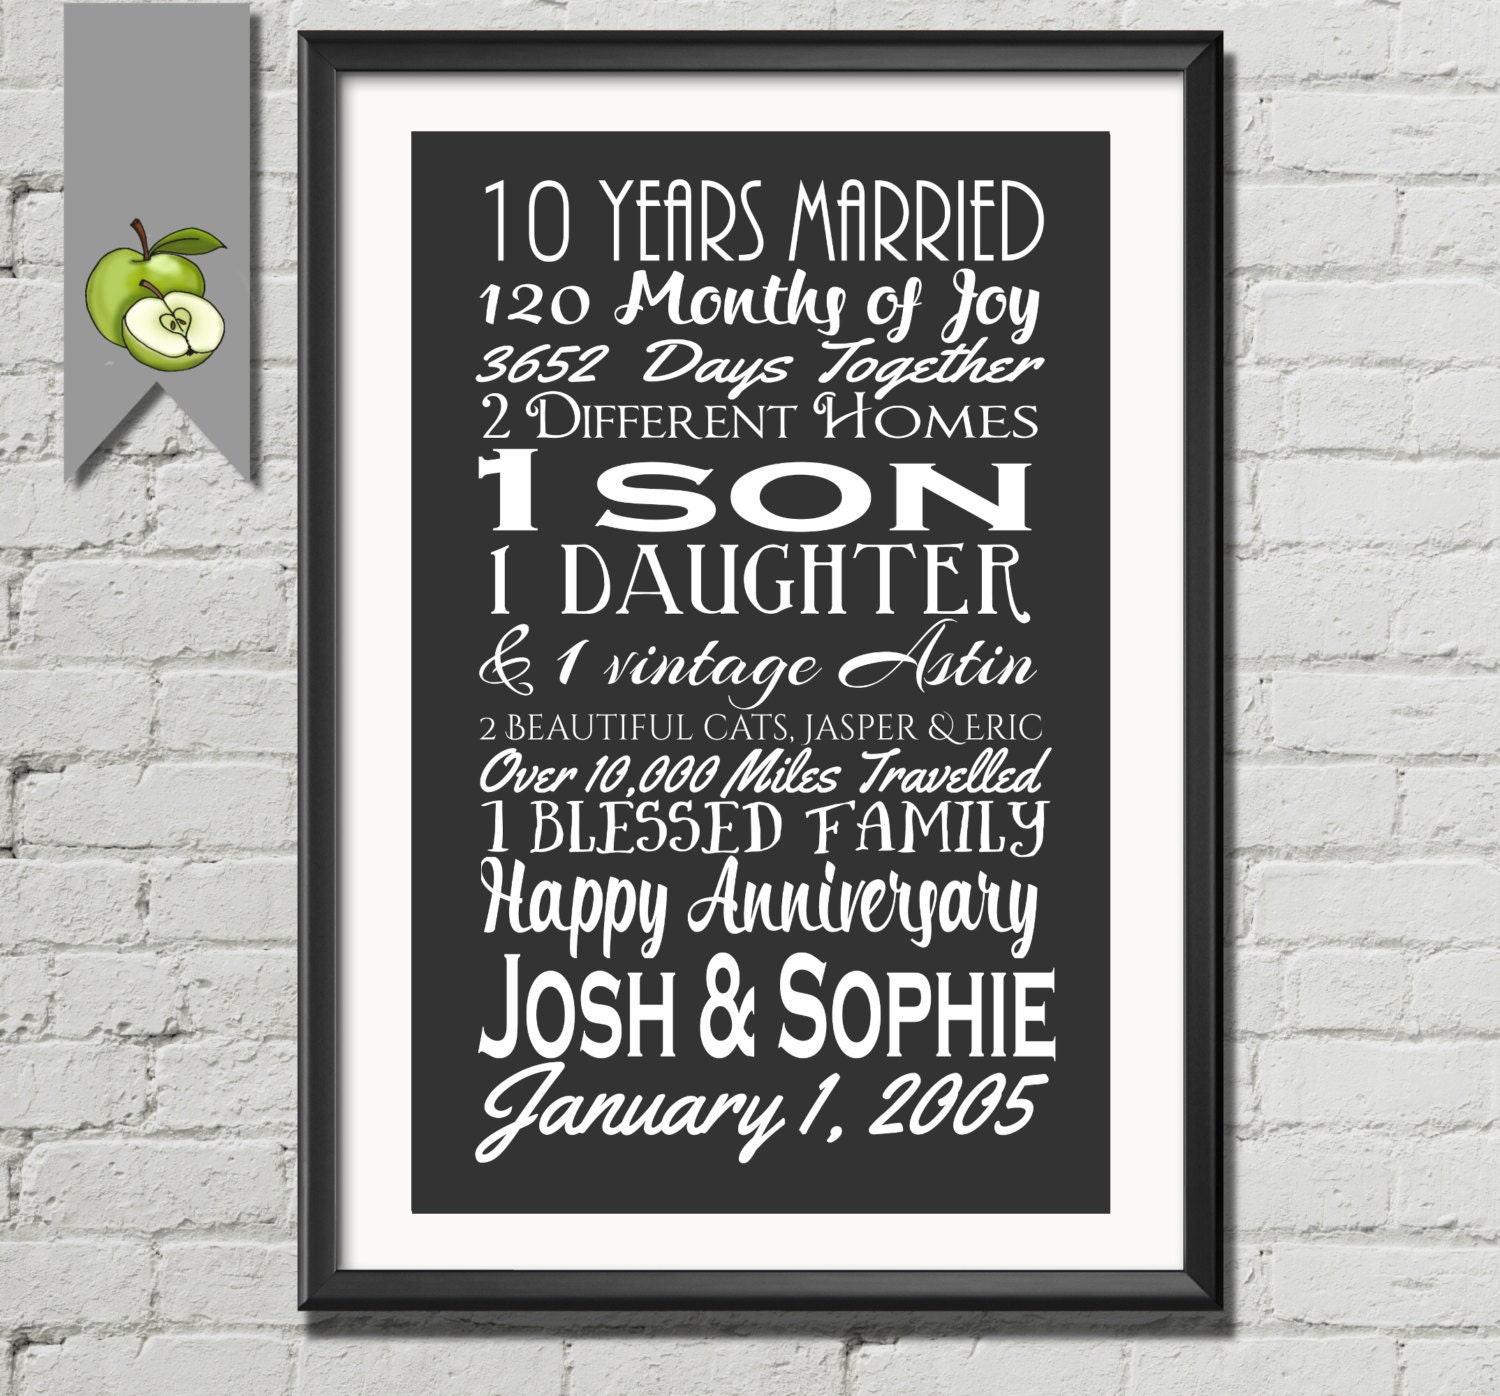 Wedding Anniversary Gifts For Husband Ideas: 10th Anniversary Gift Tenth Anniversary Gift Wife Husband